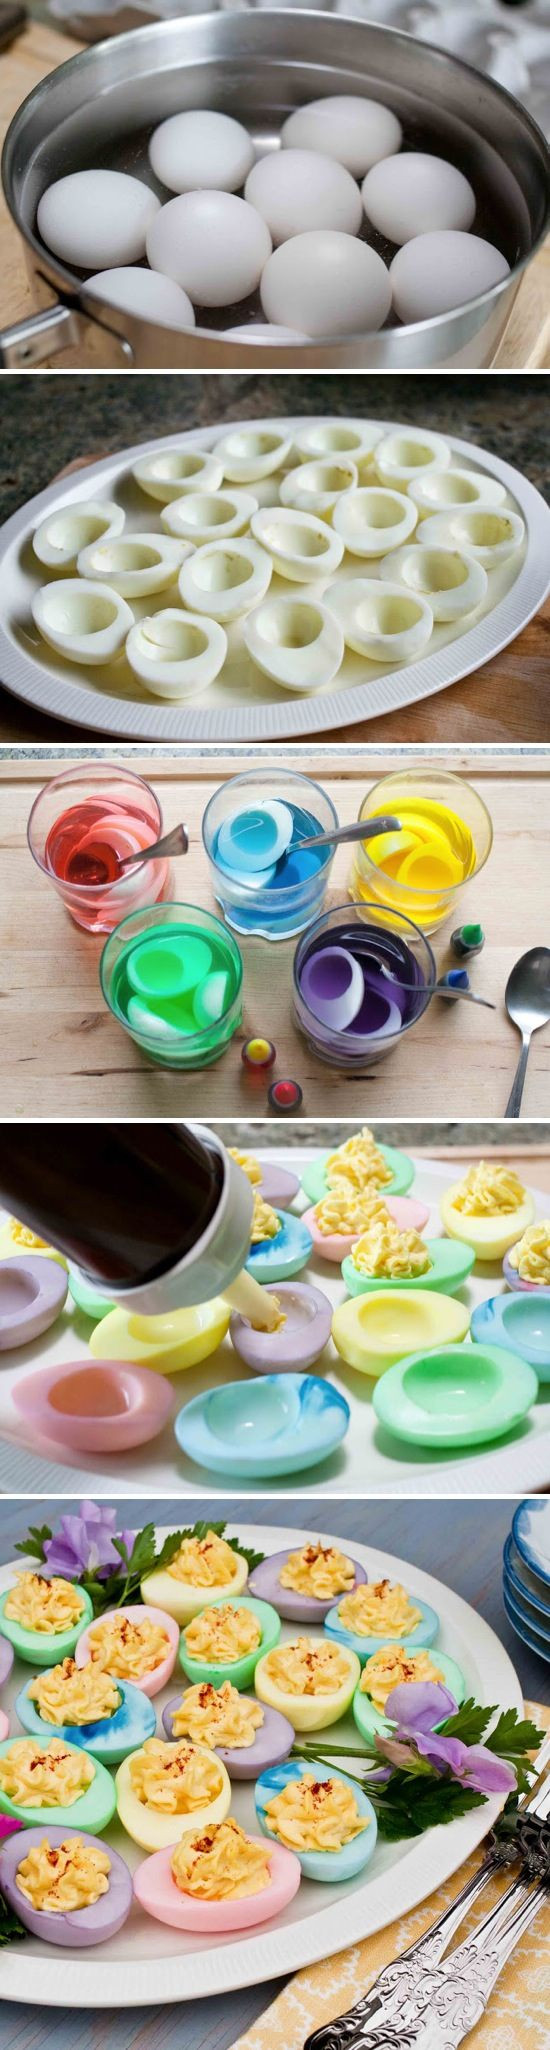 Easter Dyed Deviled Eggs  Colorful Deviled Eggs